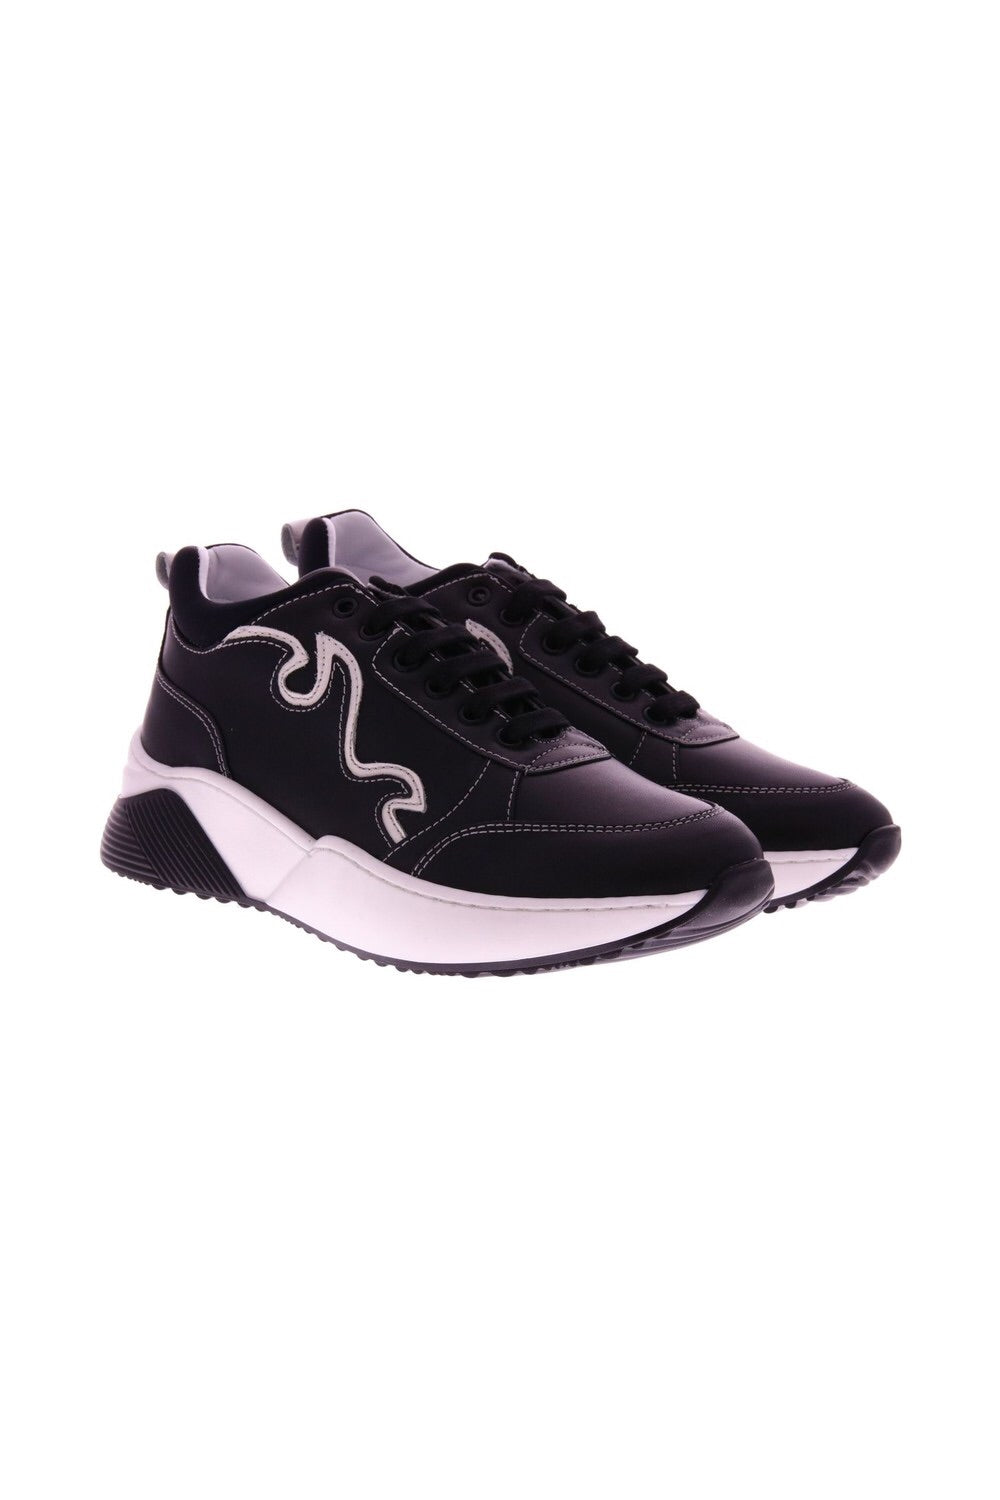 Fiamme - black/white leather sneaker